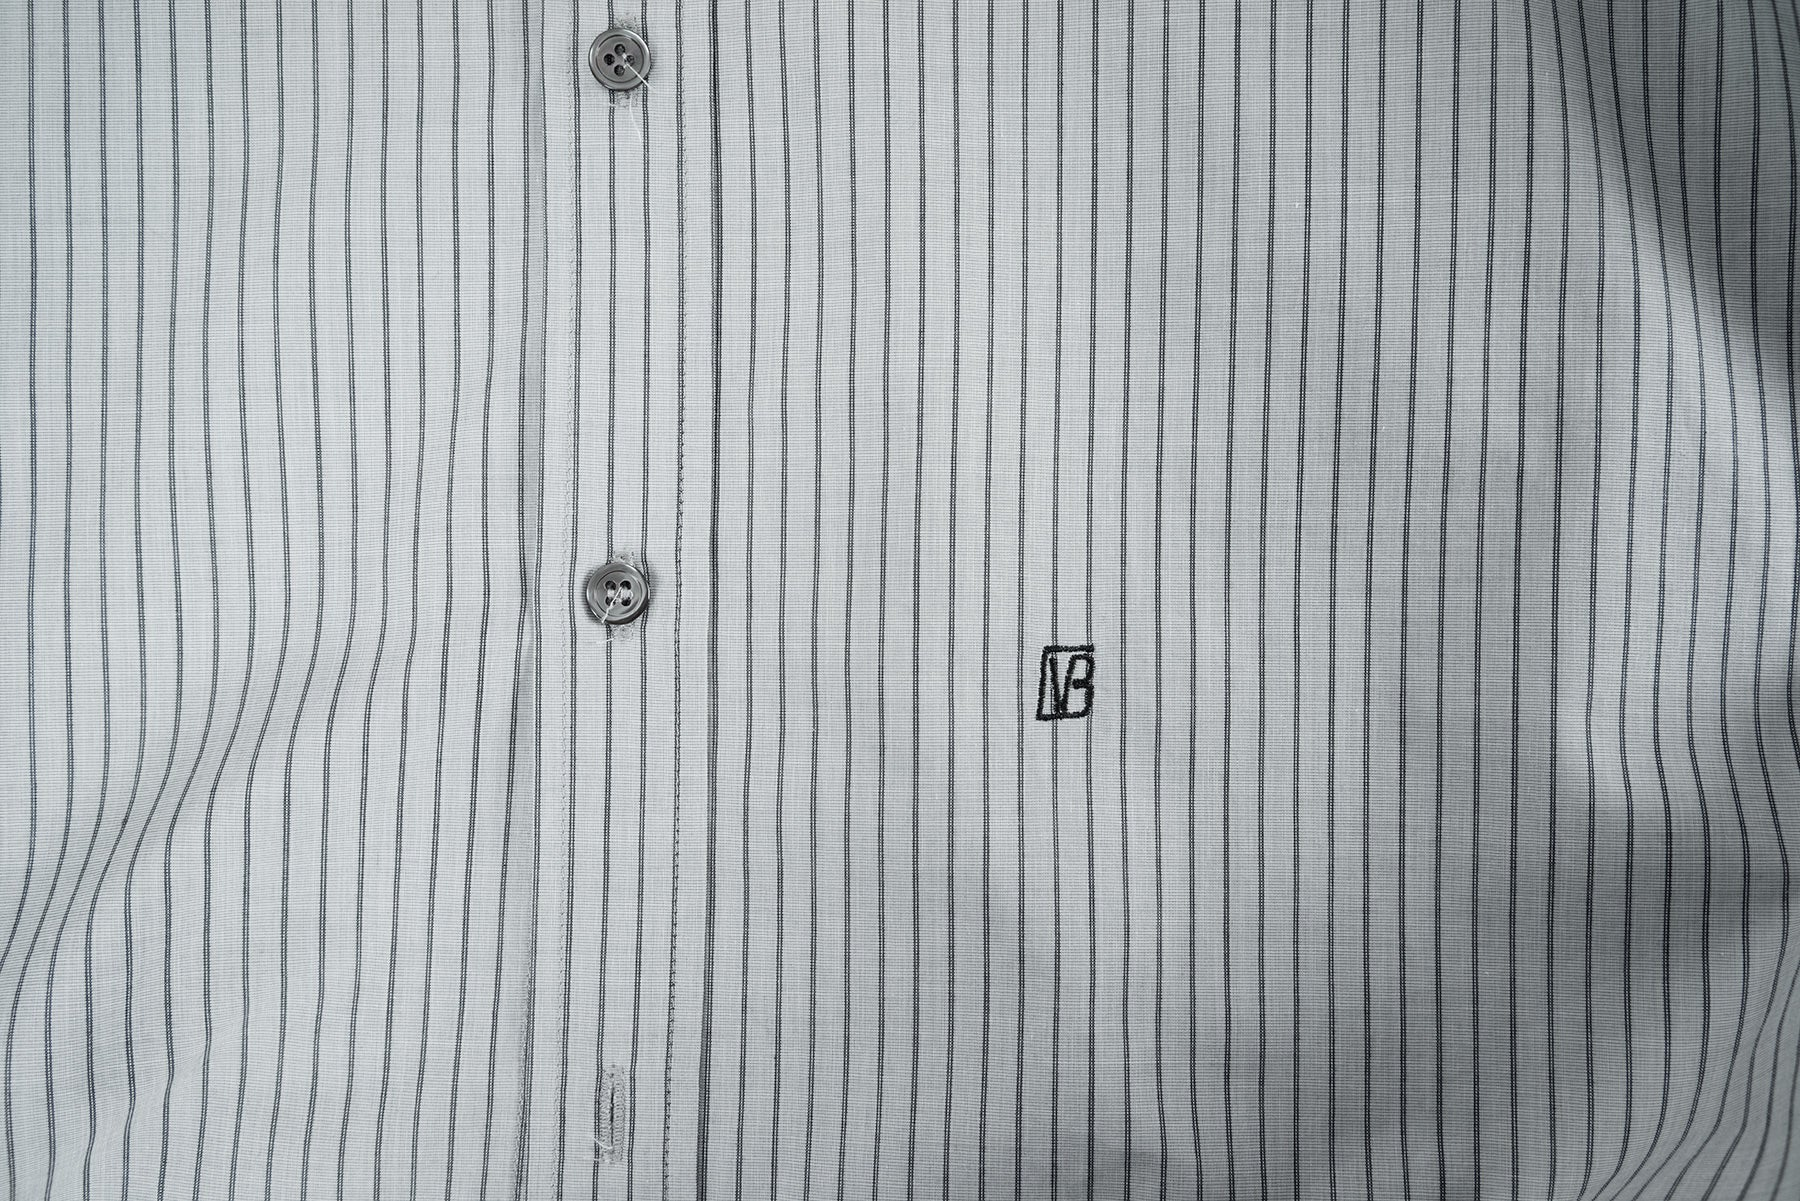 2007 A/W PINSTRIPE SHIRT WITH EMBROIDERED LOGO ON THE FRONT